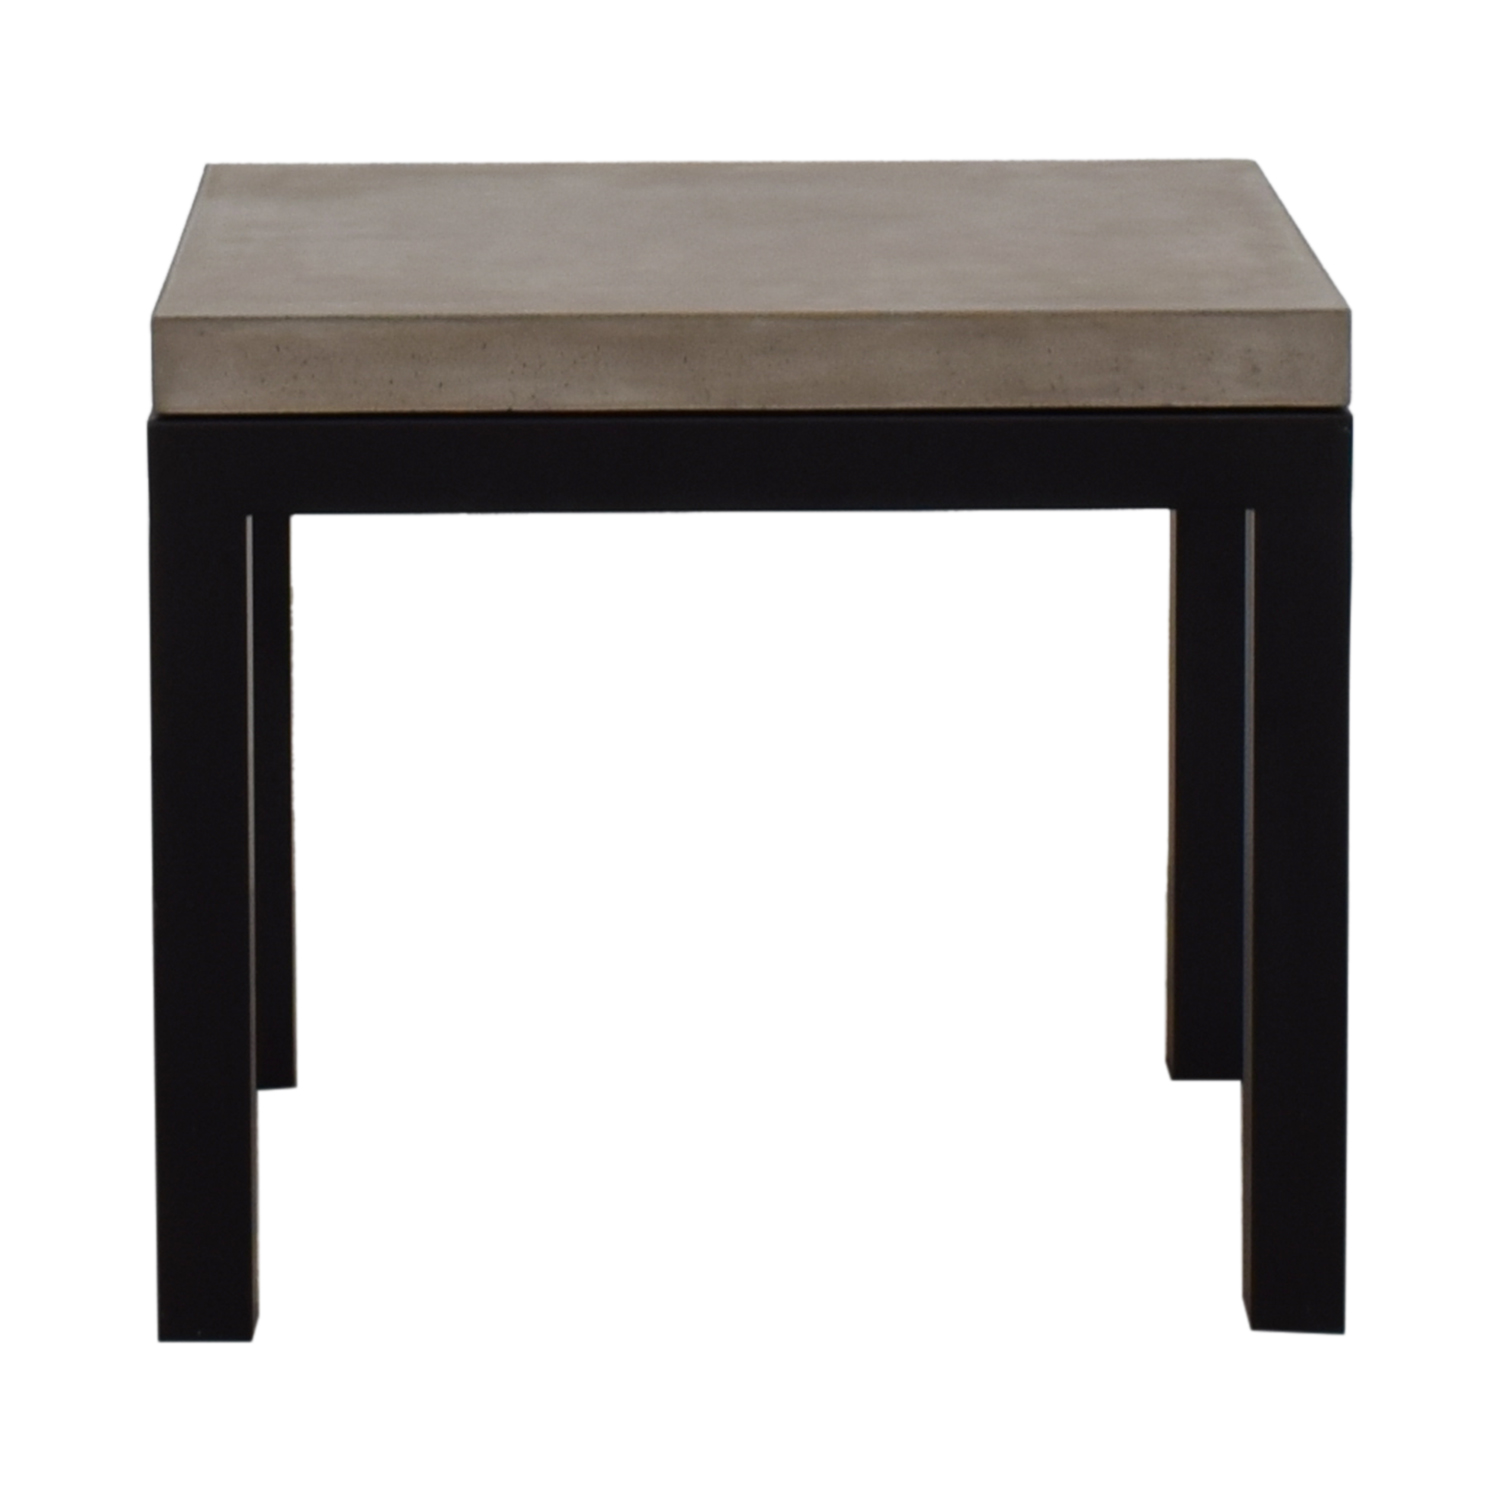 Crate & Barrel Crate & Barrel Parsons Concrete Top Dark Steel Base End Table